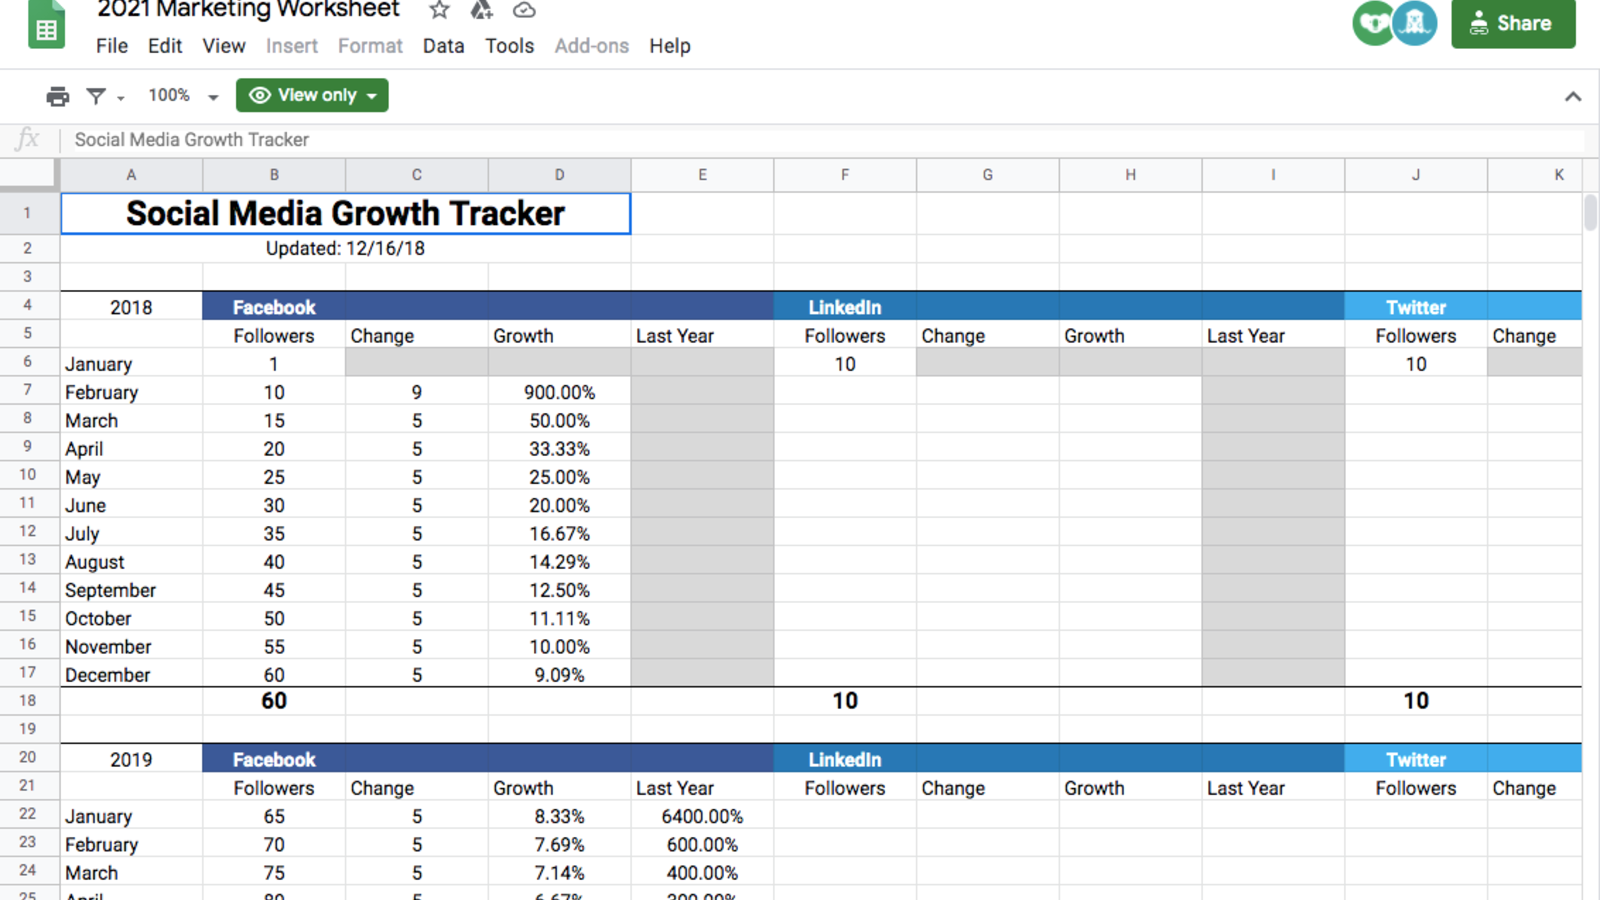 Social Media Growth Tracker Template